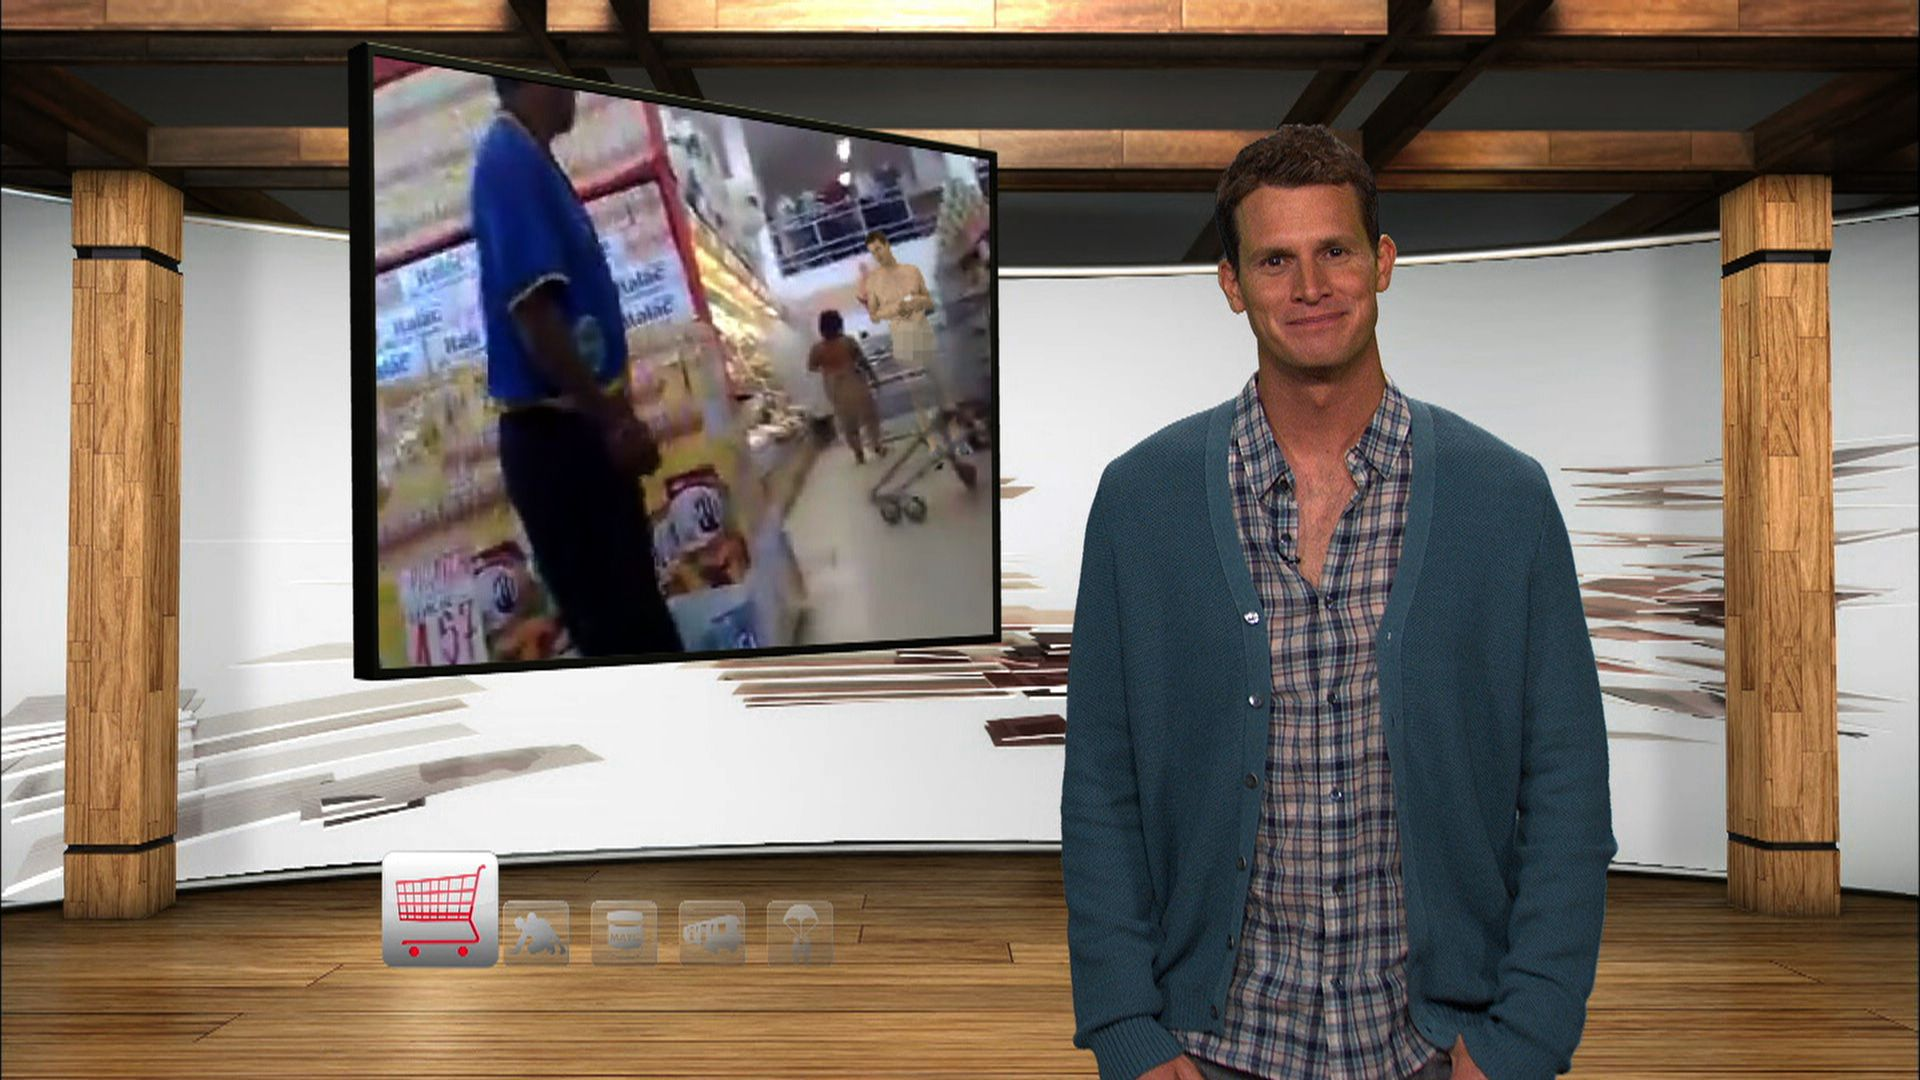 Naked Woman Grocery Shopping - Tosh0 Video Clip -8686